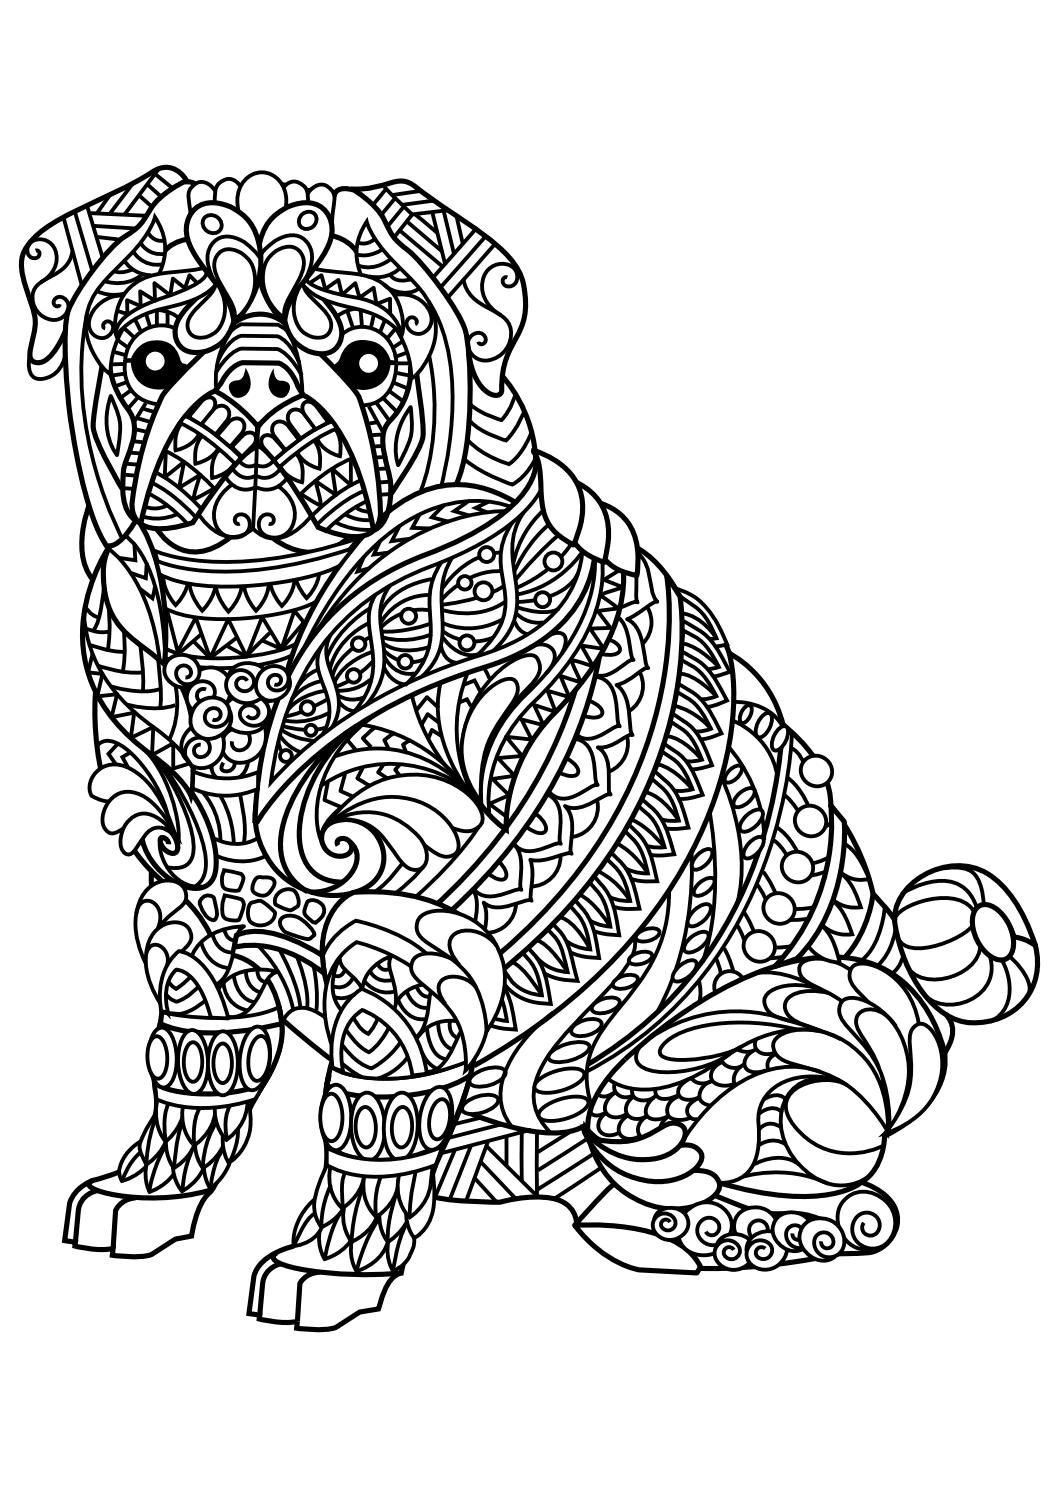 Pin On Printable Coloring Pages Ideas